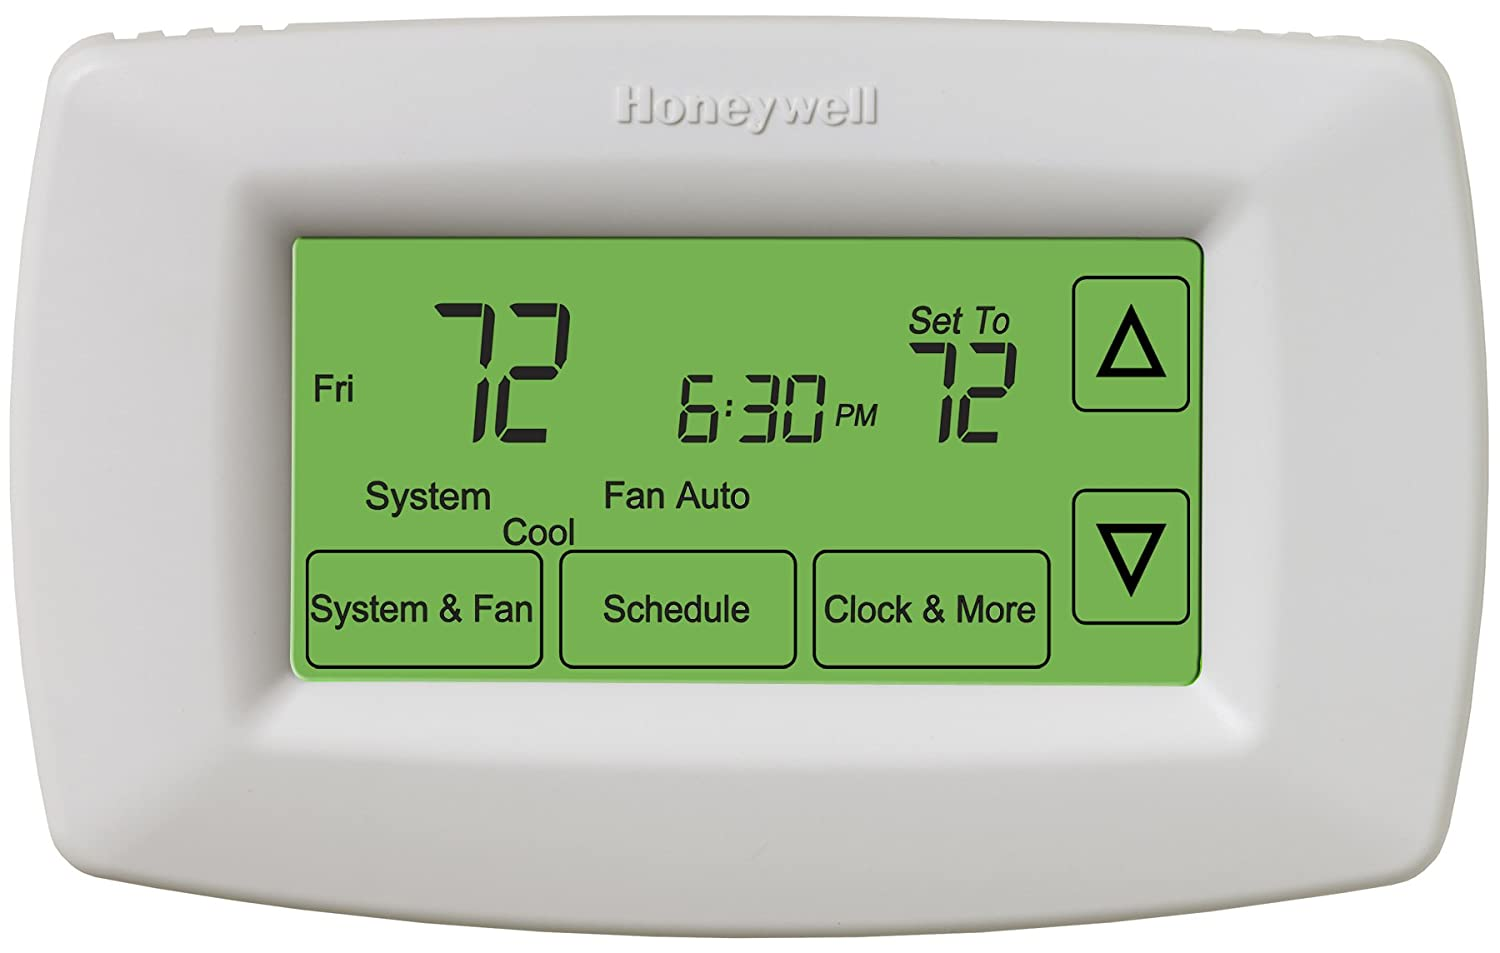 Honeywell Touchscreen 7 Day Programmable Thermostat Building Rth8500d Wiring Diagram Supplies Amazon Canada